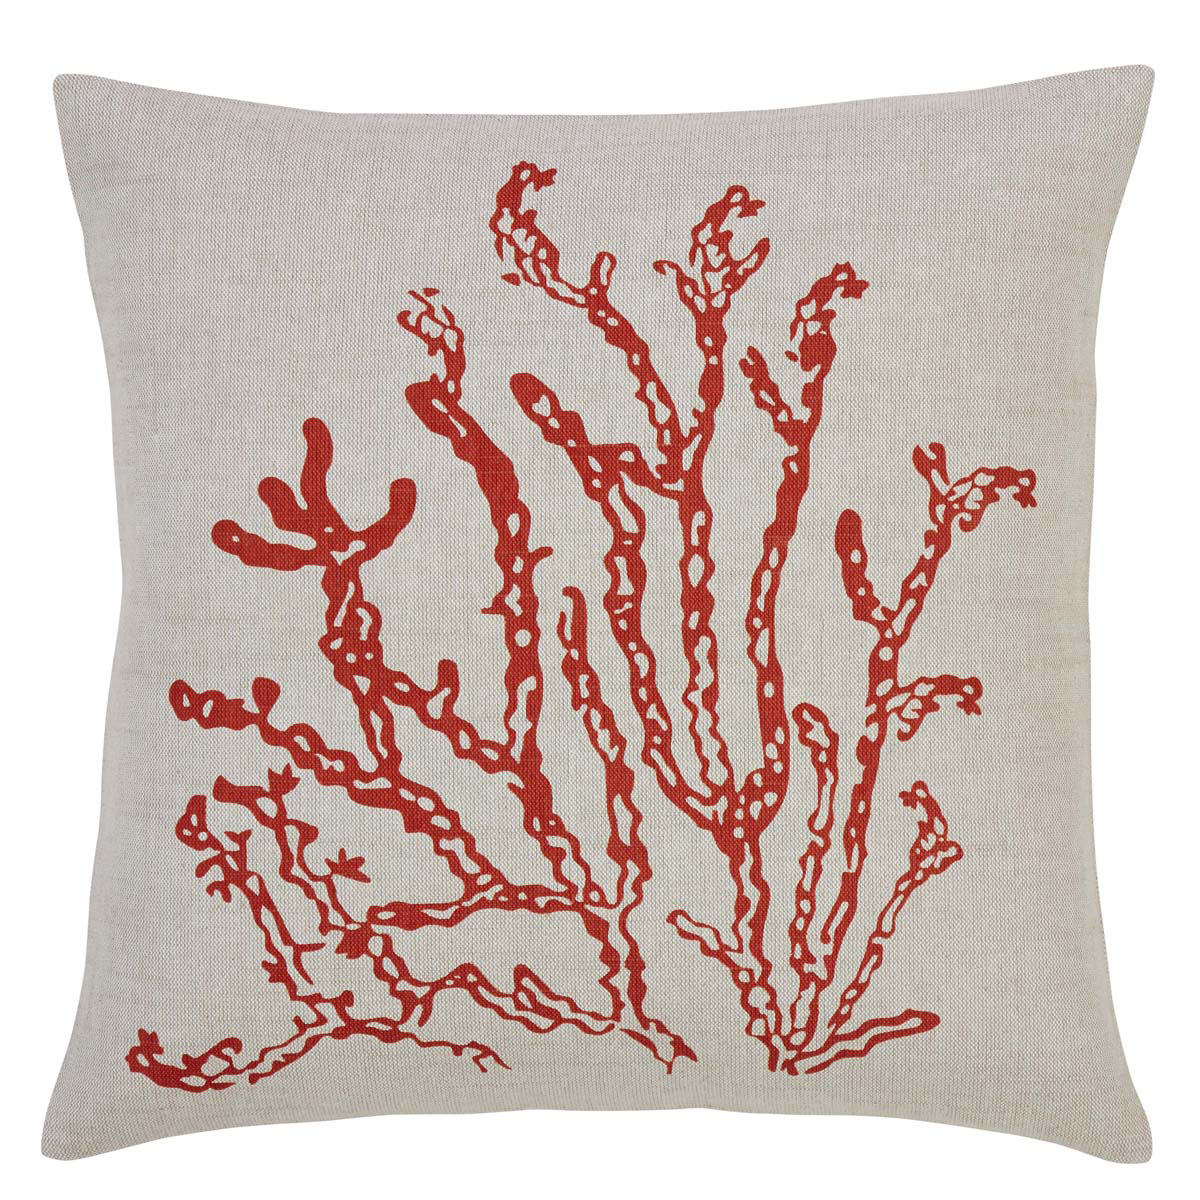 "Coral Life Pillow - 18""x18"" - VHC Brands - Country Farmhouse"